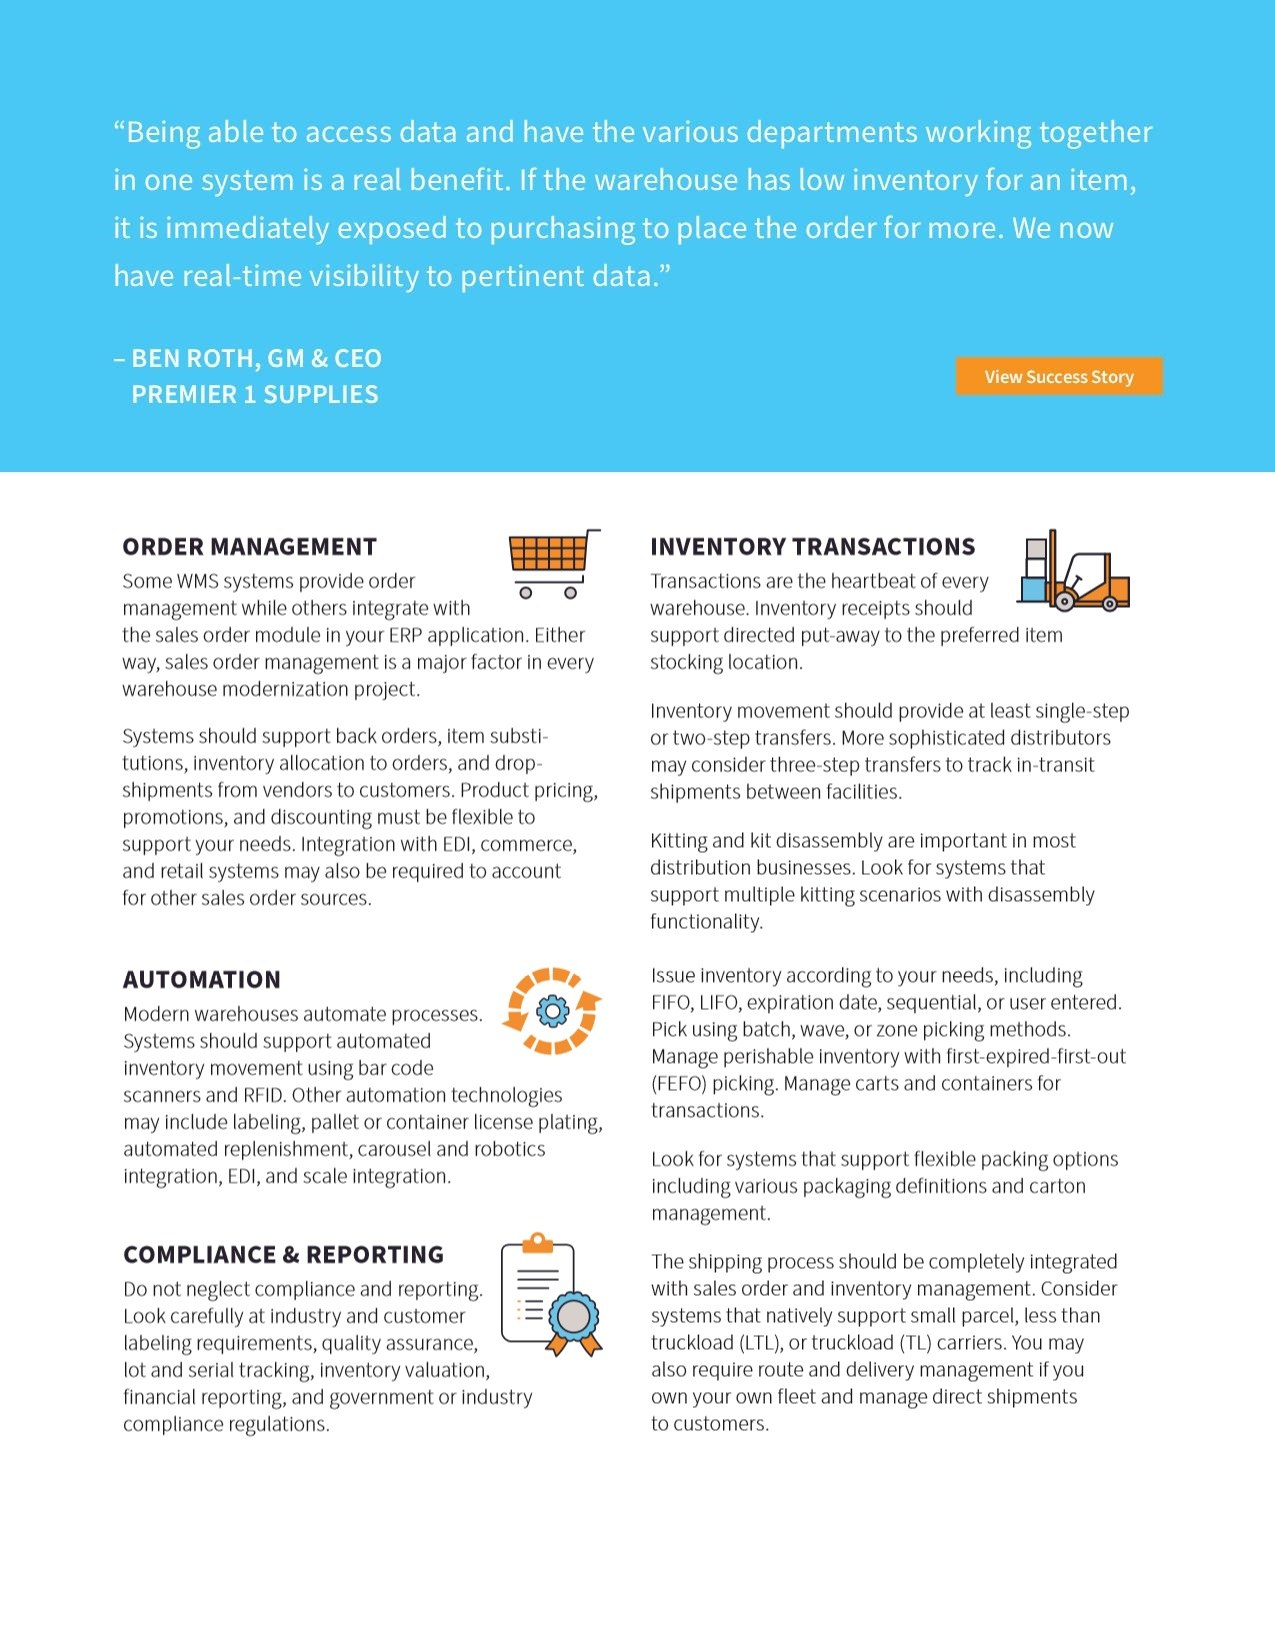 Planning a Modern Warehouse? Here's Your Playbook., page 2